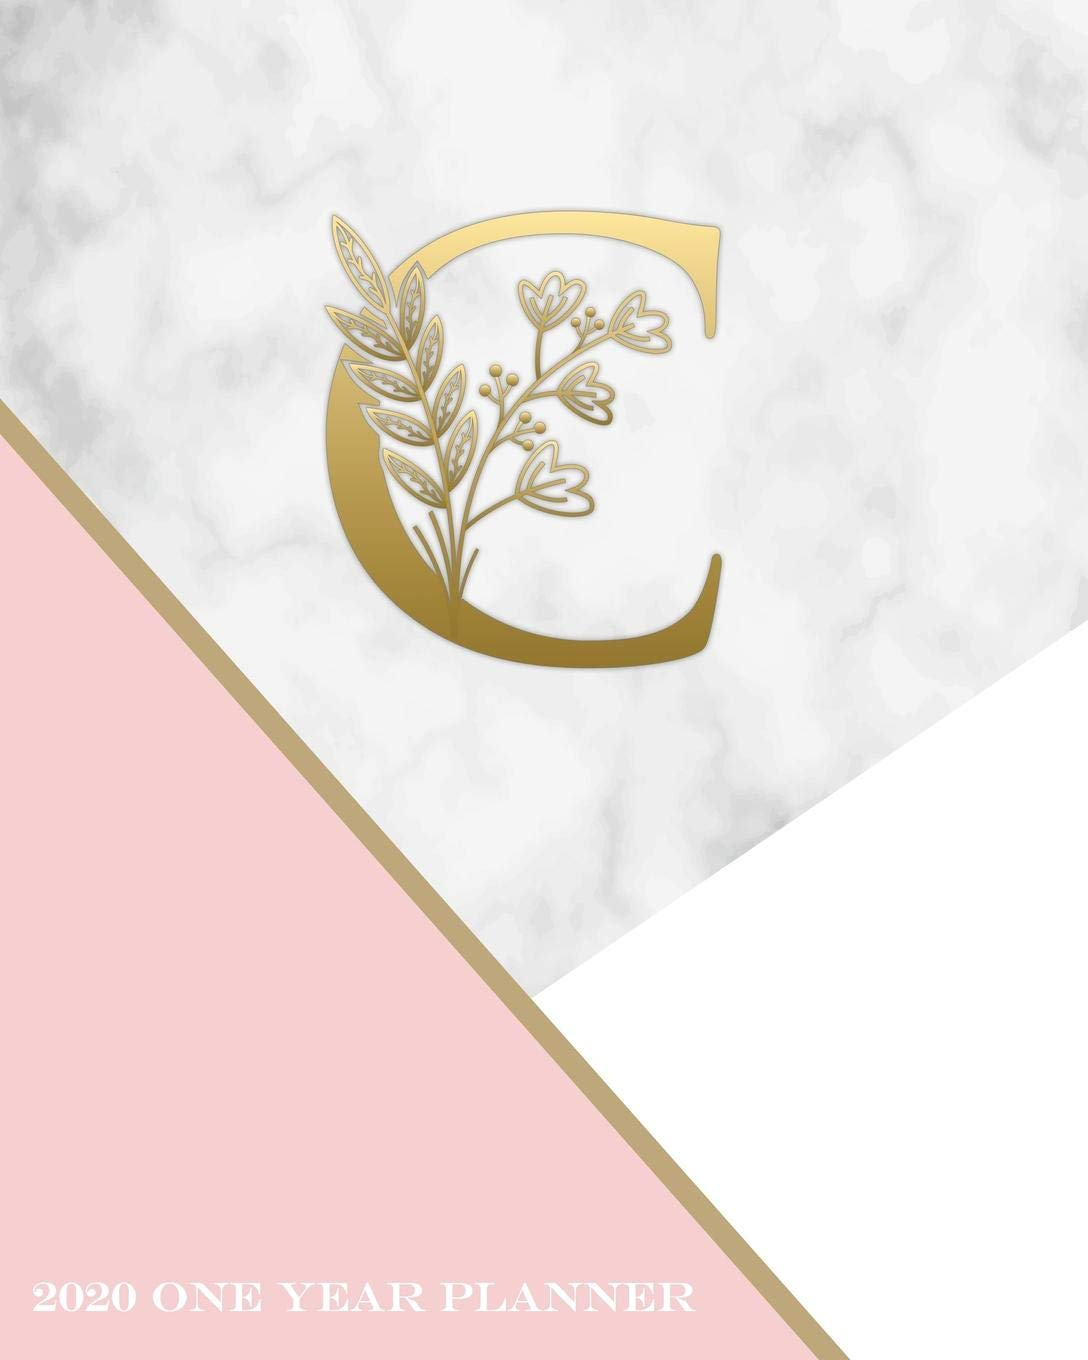 Schedule C 2020.C 2020 One Year Planner Elegant Gold Pink And Marble